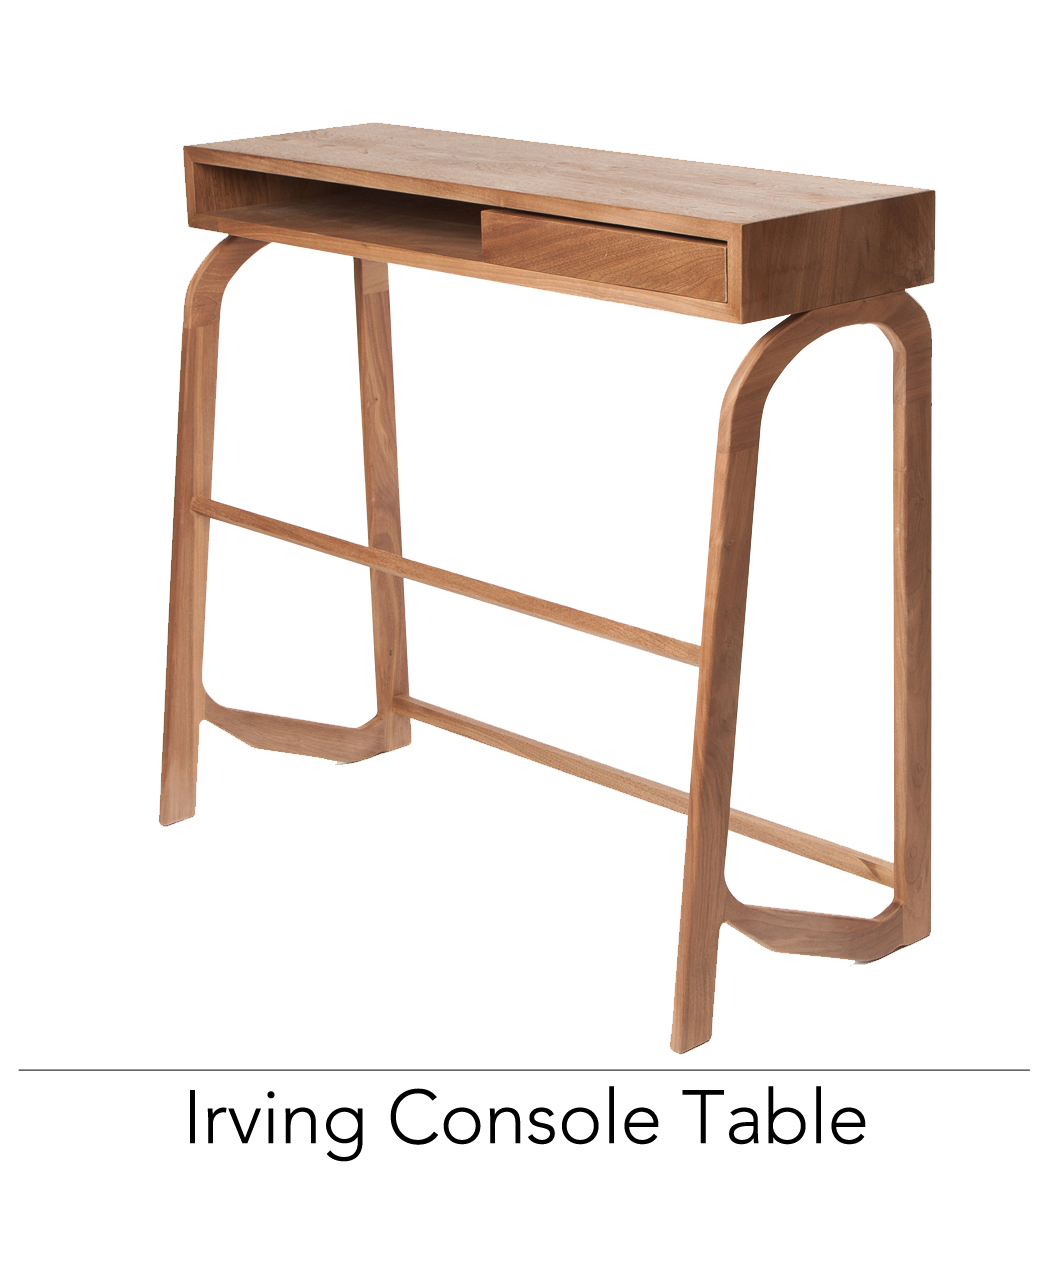 Irving Console Front New.jpg